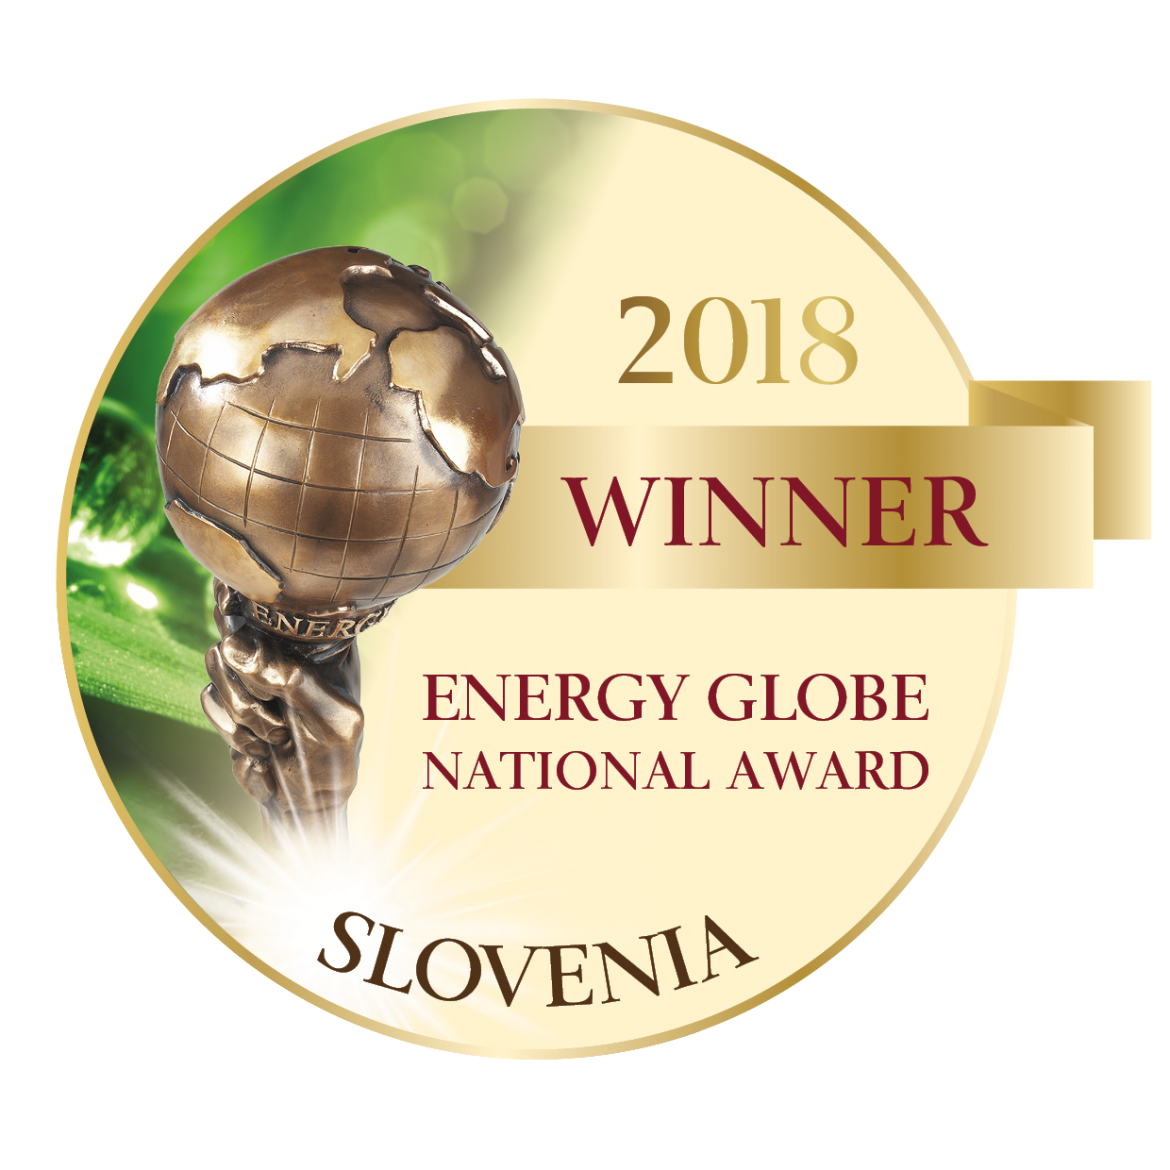 ARHEL is a winner of National Energy Globe Award Slovenia 2018